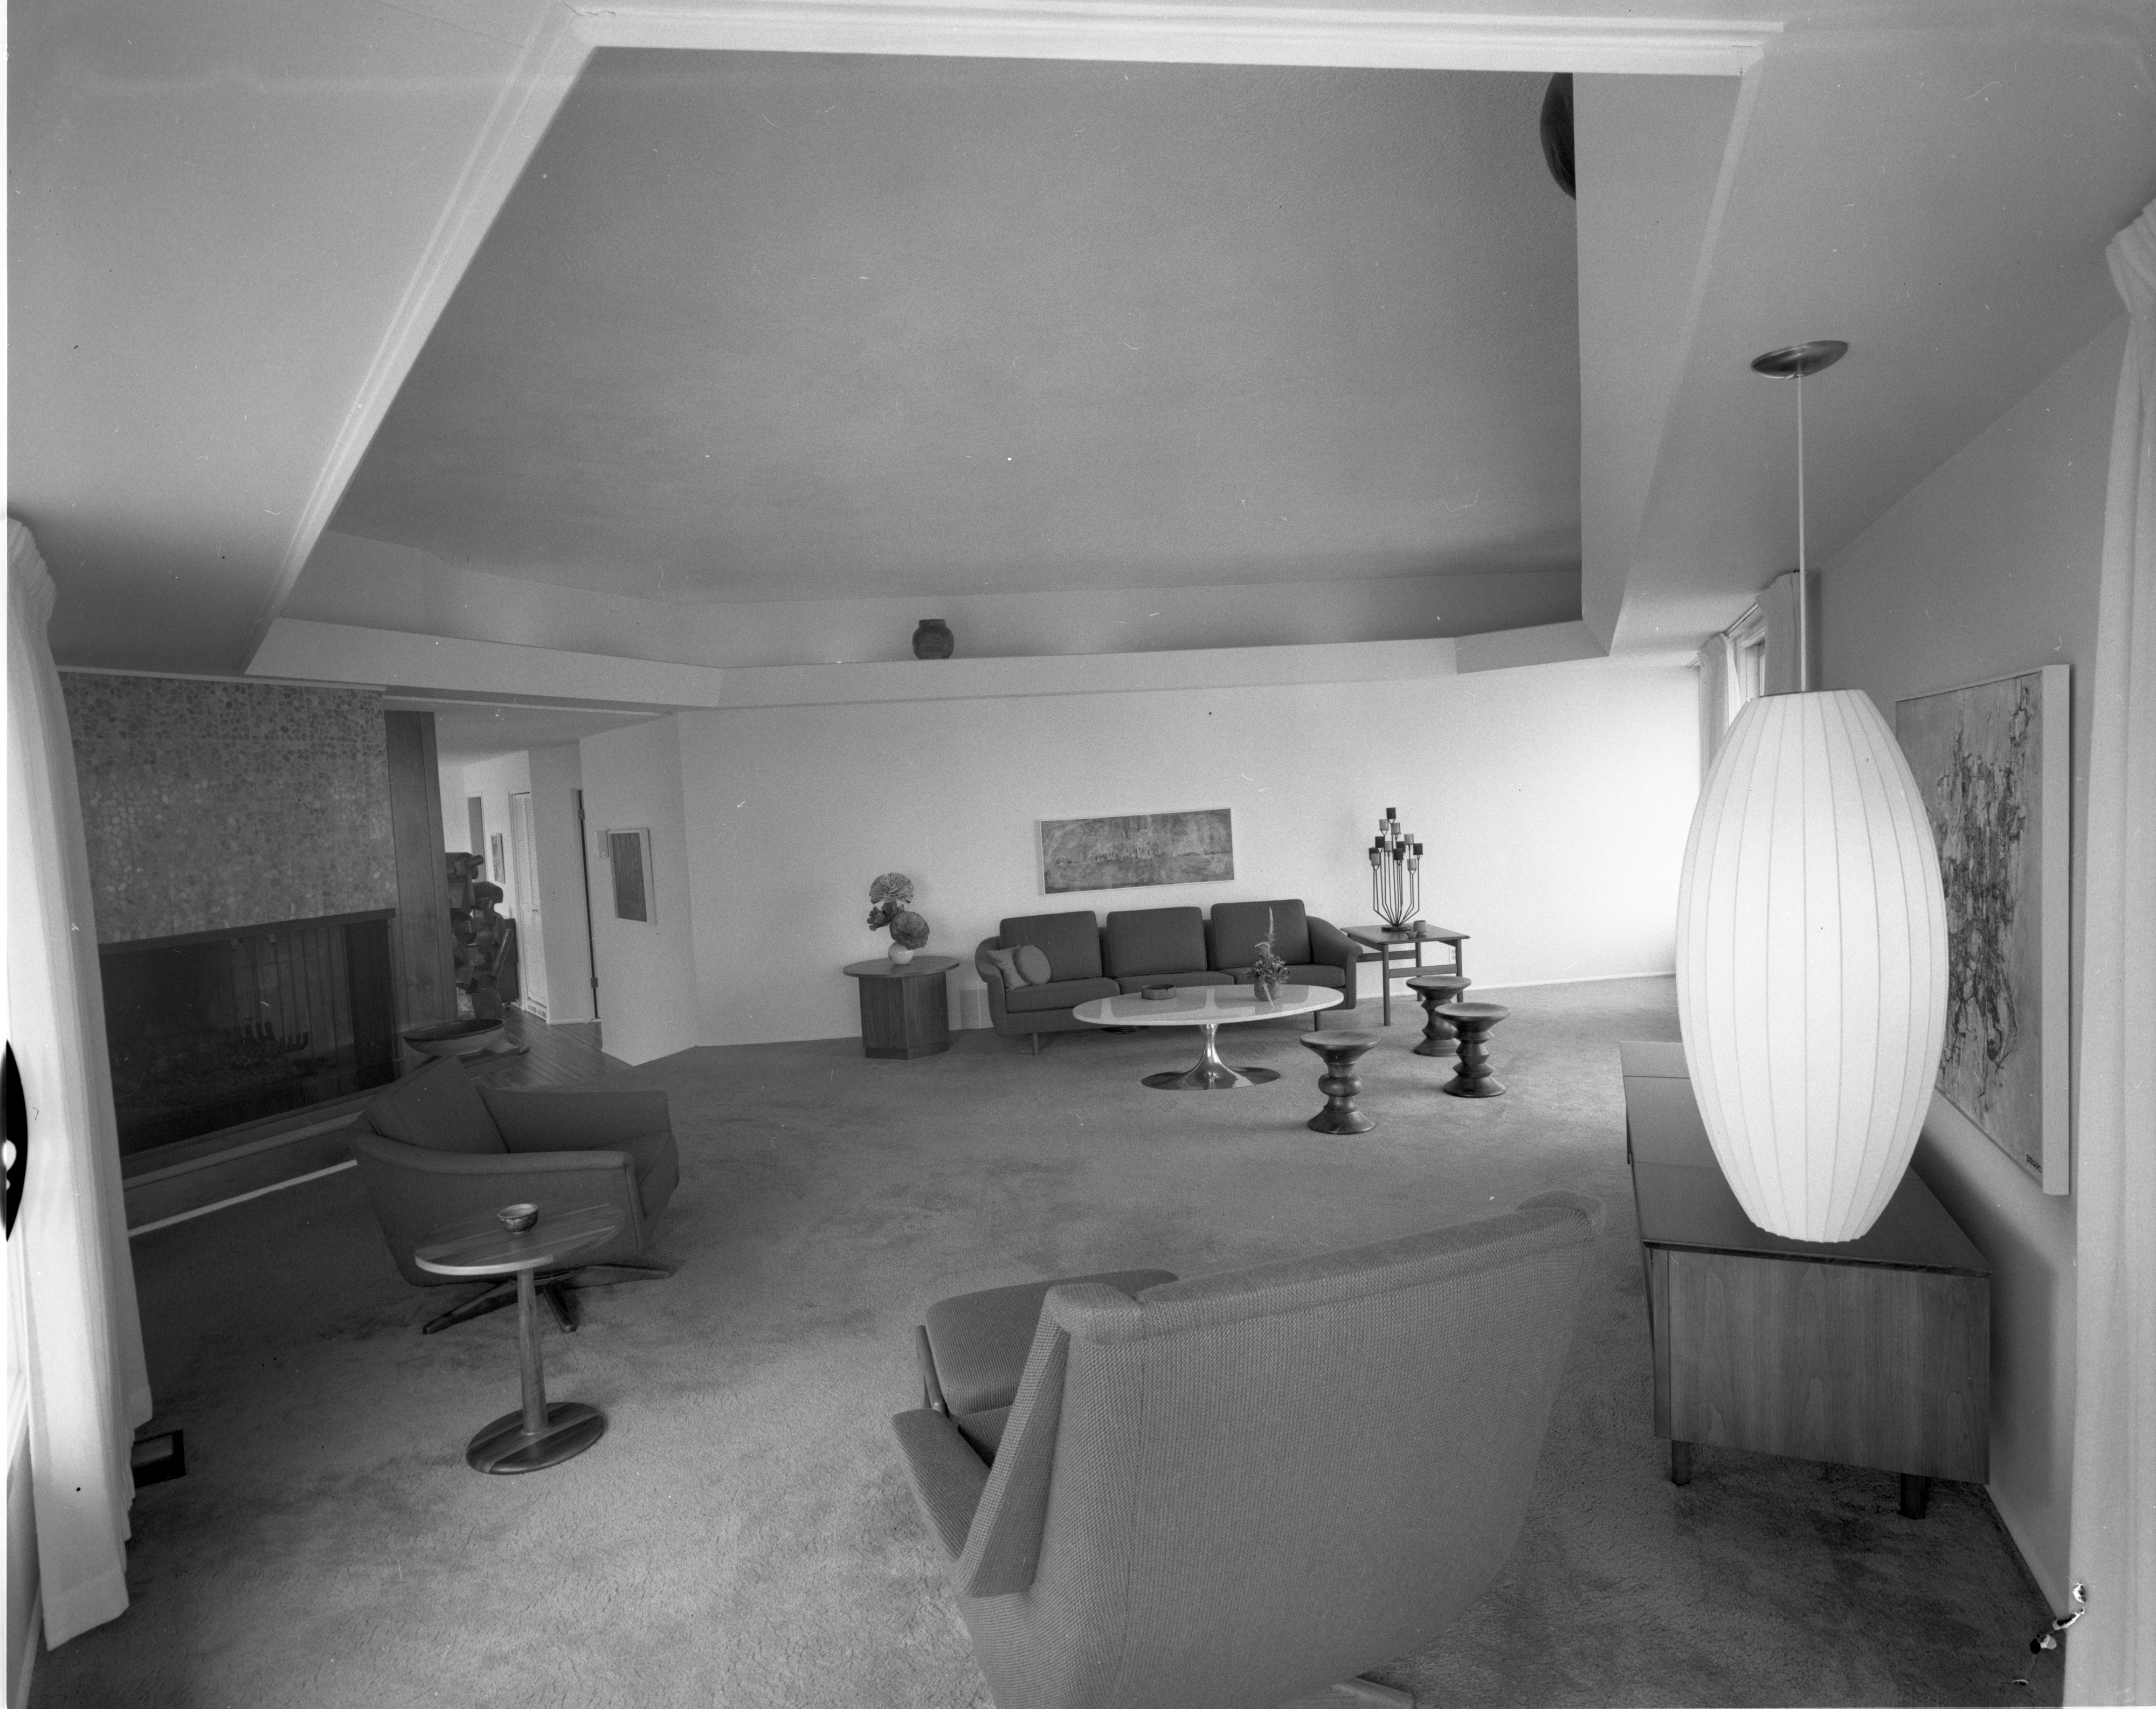 Ceilings an Architectural Feature at Merlyn C. Keller Residence, April 1967 image